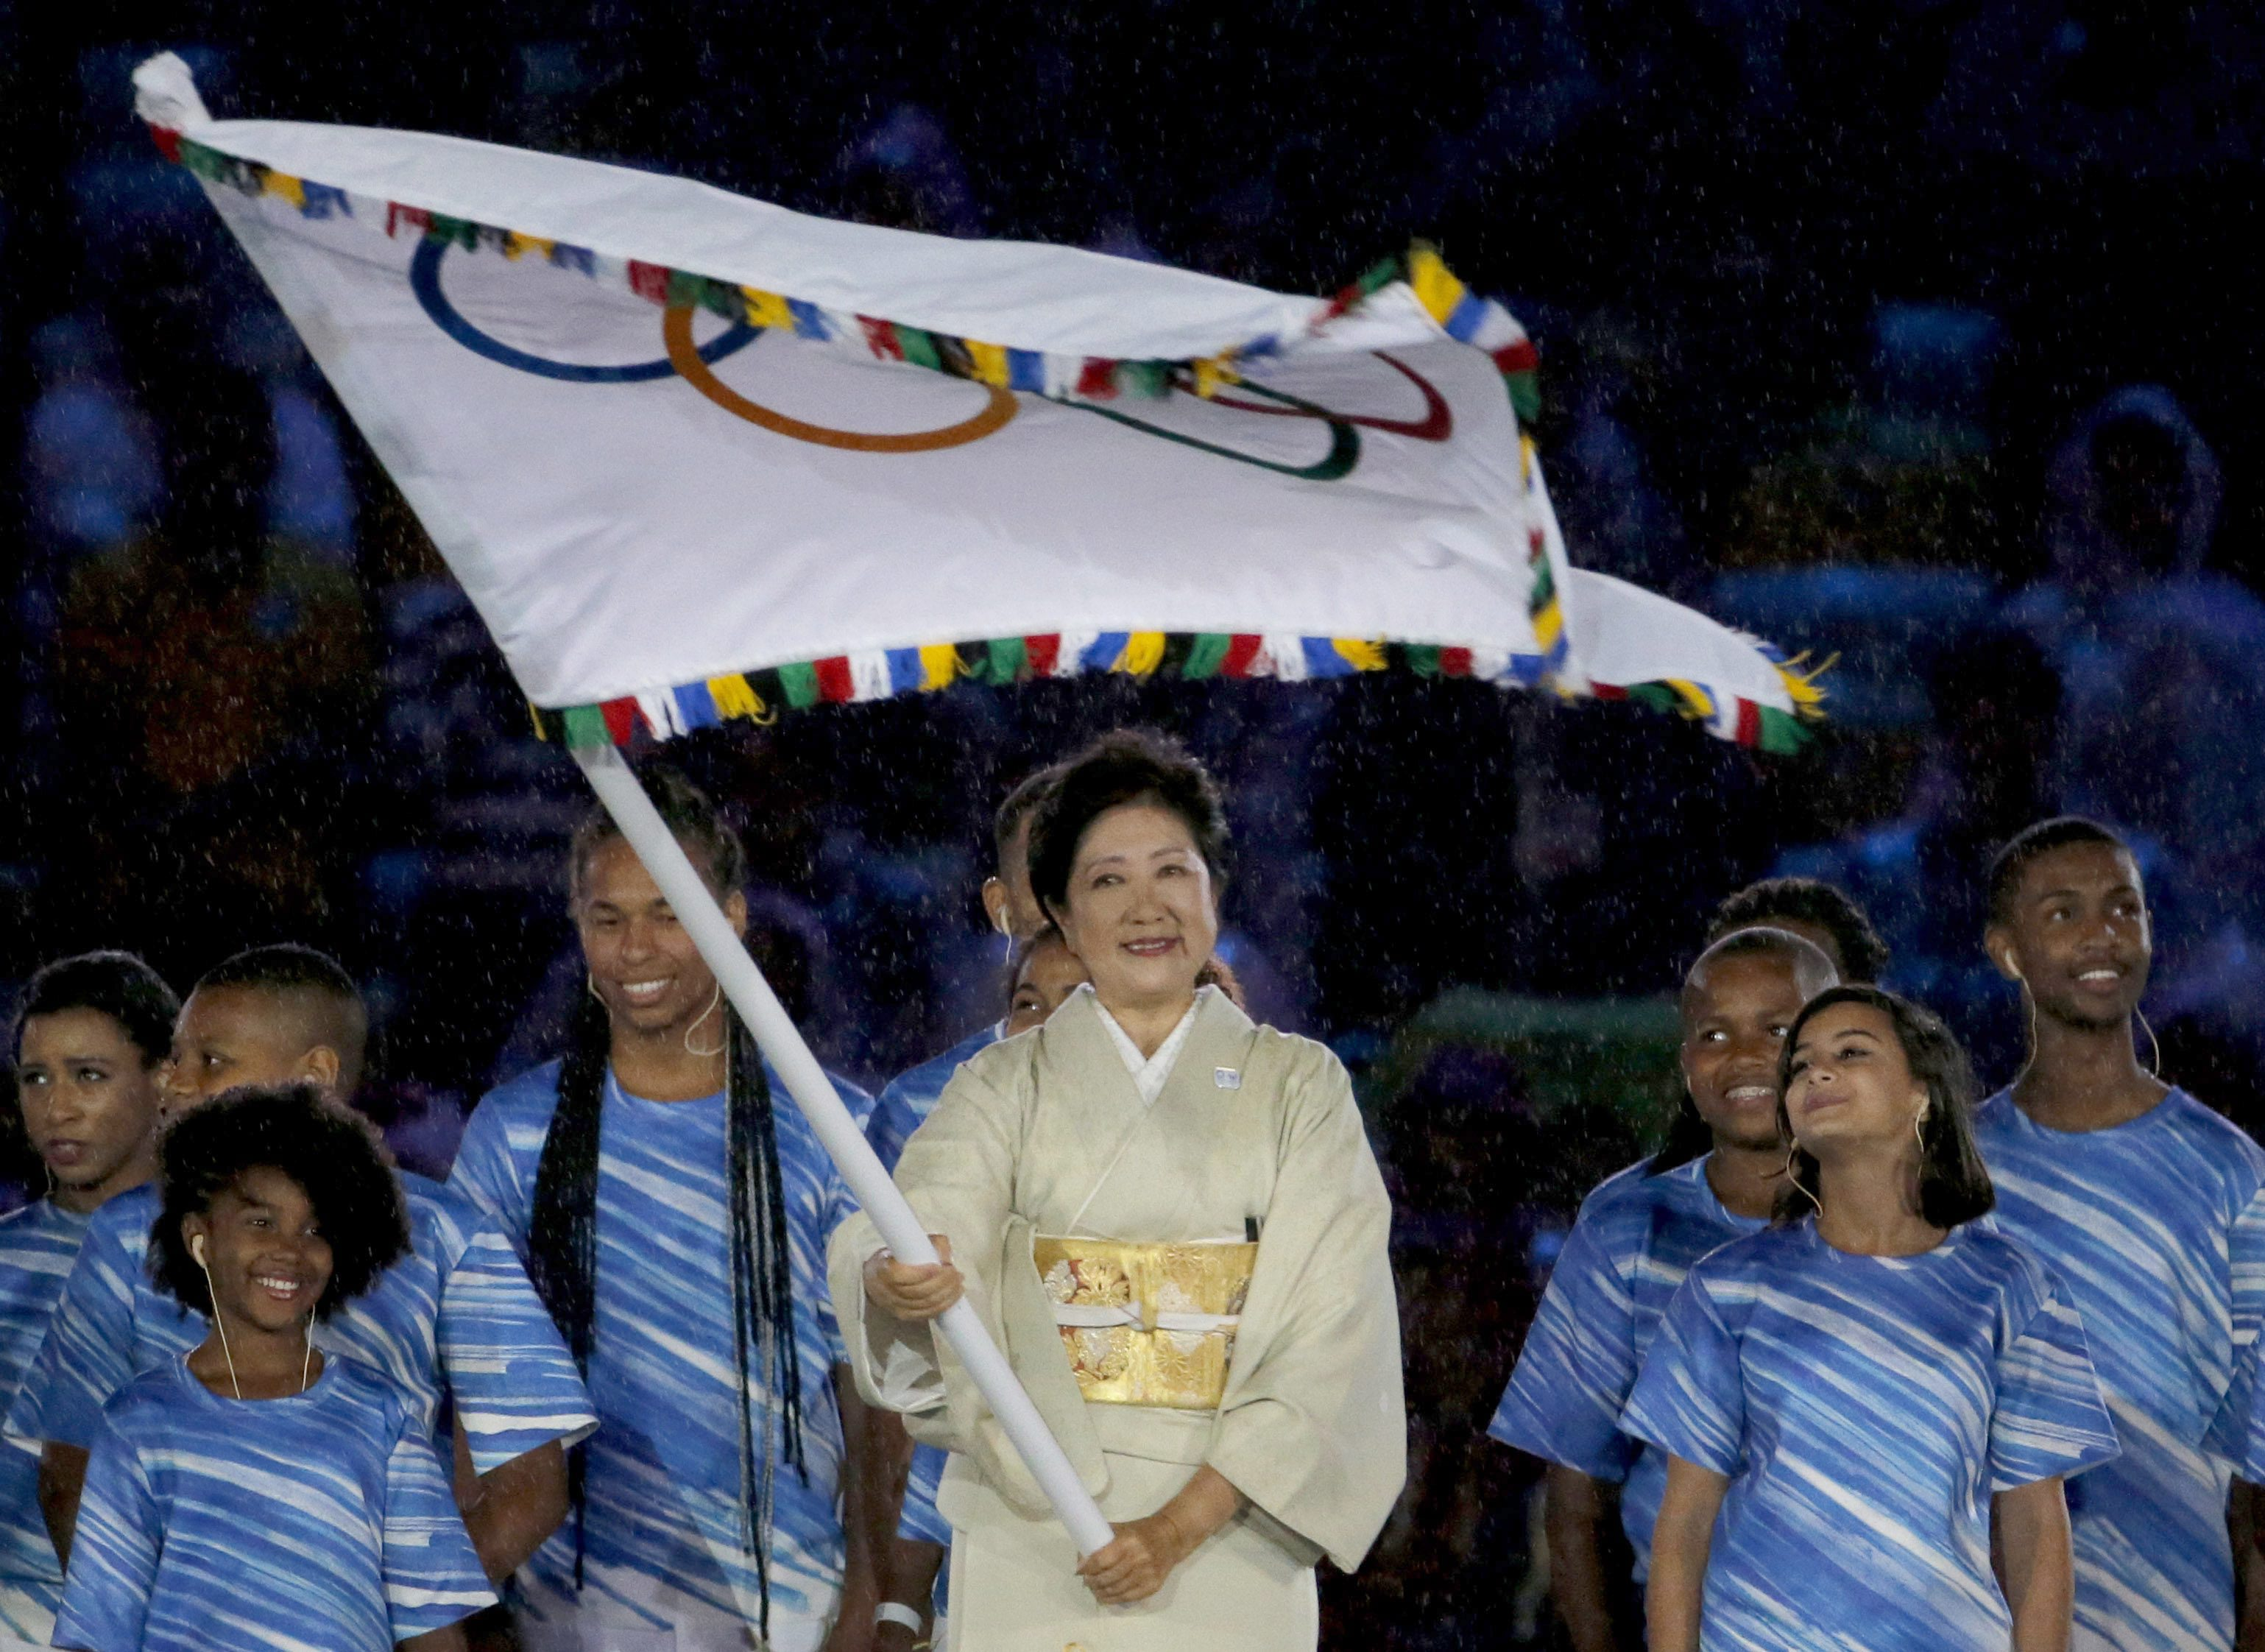 . Rio De Janeiro (Brazil), 21/08/2016.- Tokyo governor Yuriko Koike waves the Olympic Flag during the Closing Ceremony of the Rio 2016 Olympic Games at the Maracana Stadium in Rio de Janeiro, Brazil, 21 August 2016. (Tokio, Brasil) EFE/EPA/SERGEI ILNITSKY